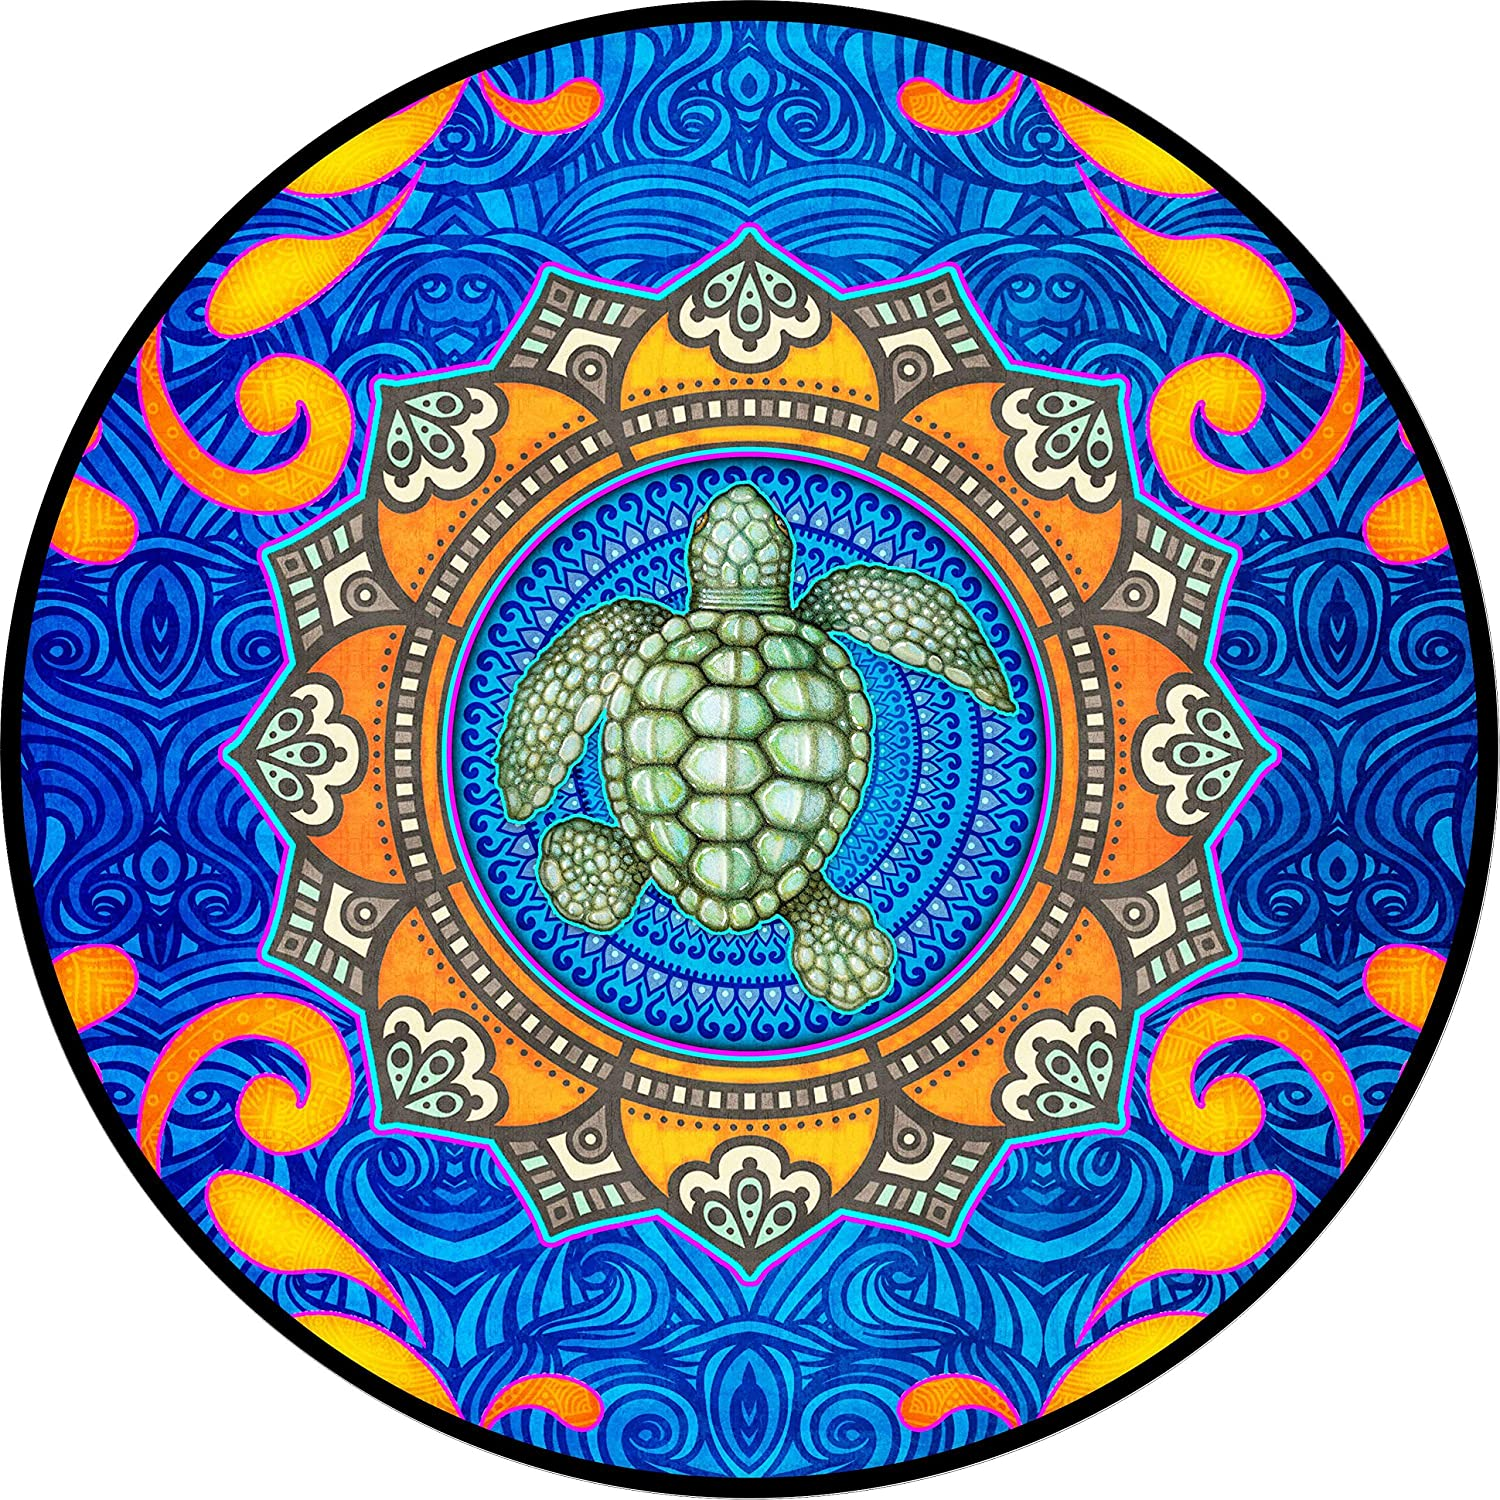 TIRE COVER CENTRAL Mystical Sea Turtle Wheel Spare Tire Cover (Select tire Size/Back up Camera Option in MENU) Sized to Any Make Model for 255/75R17 Dan Morris(c)